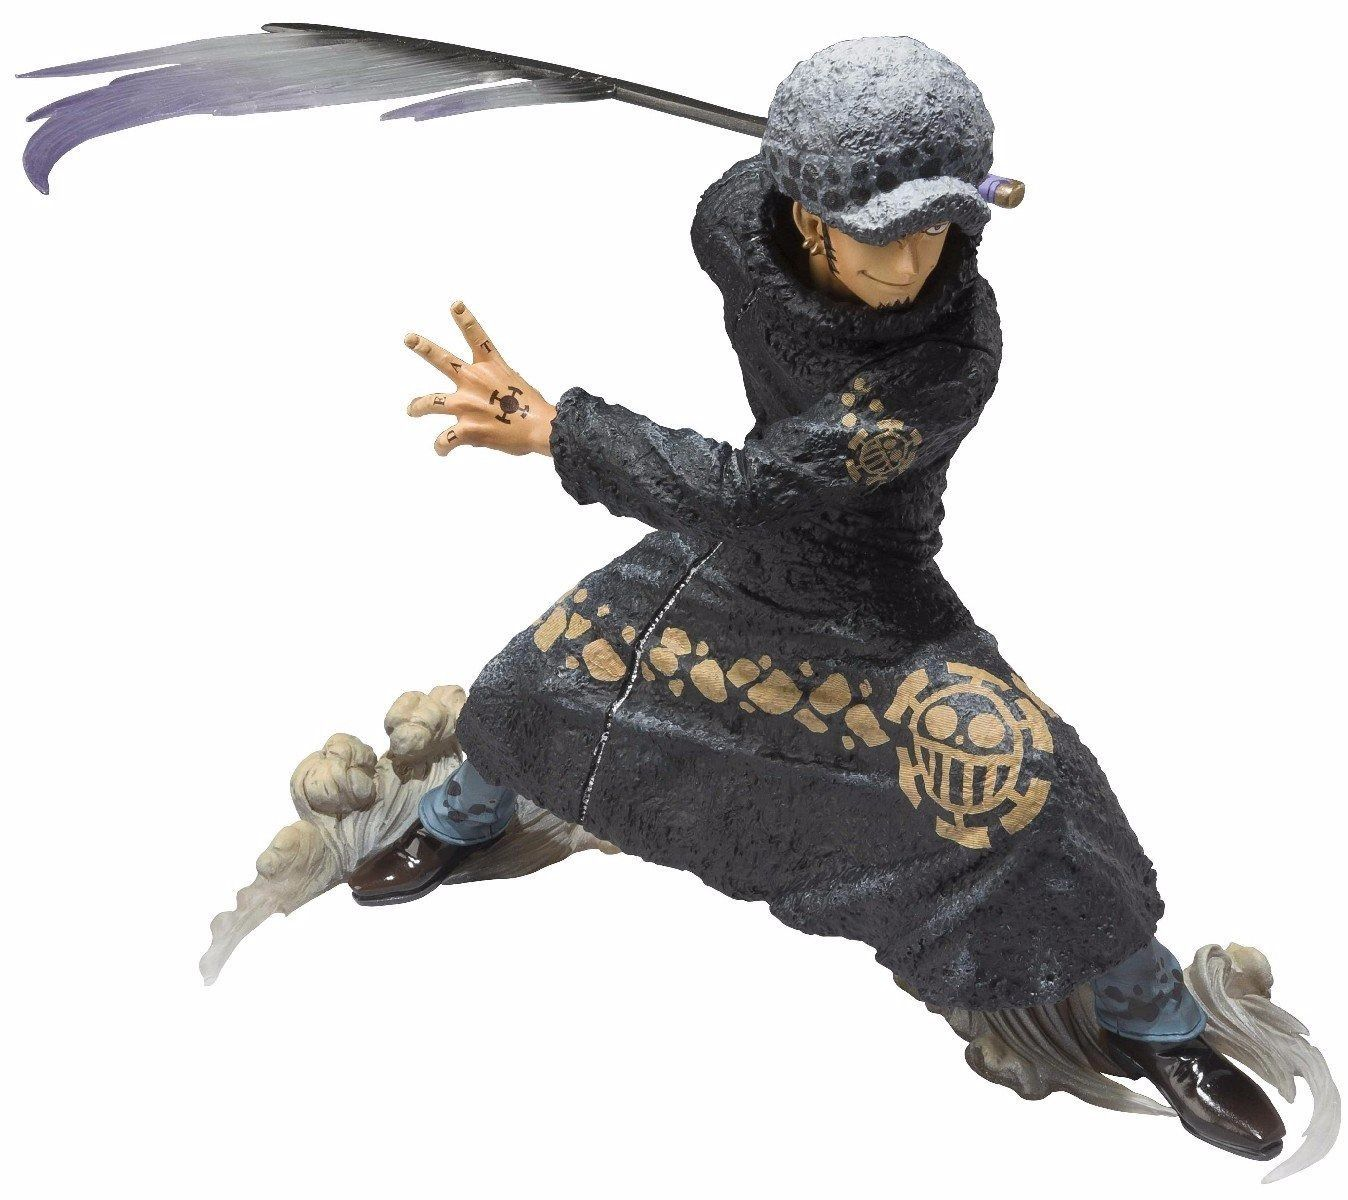 Figuarts ZERO One Piece TRAFALGAR LAW BATTLE Ver PVC Figure BANDAI from Japan_1